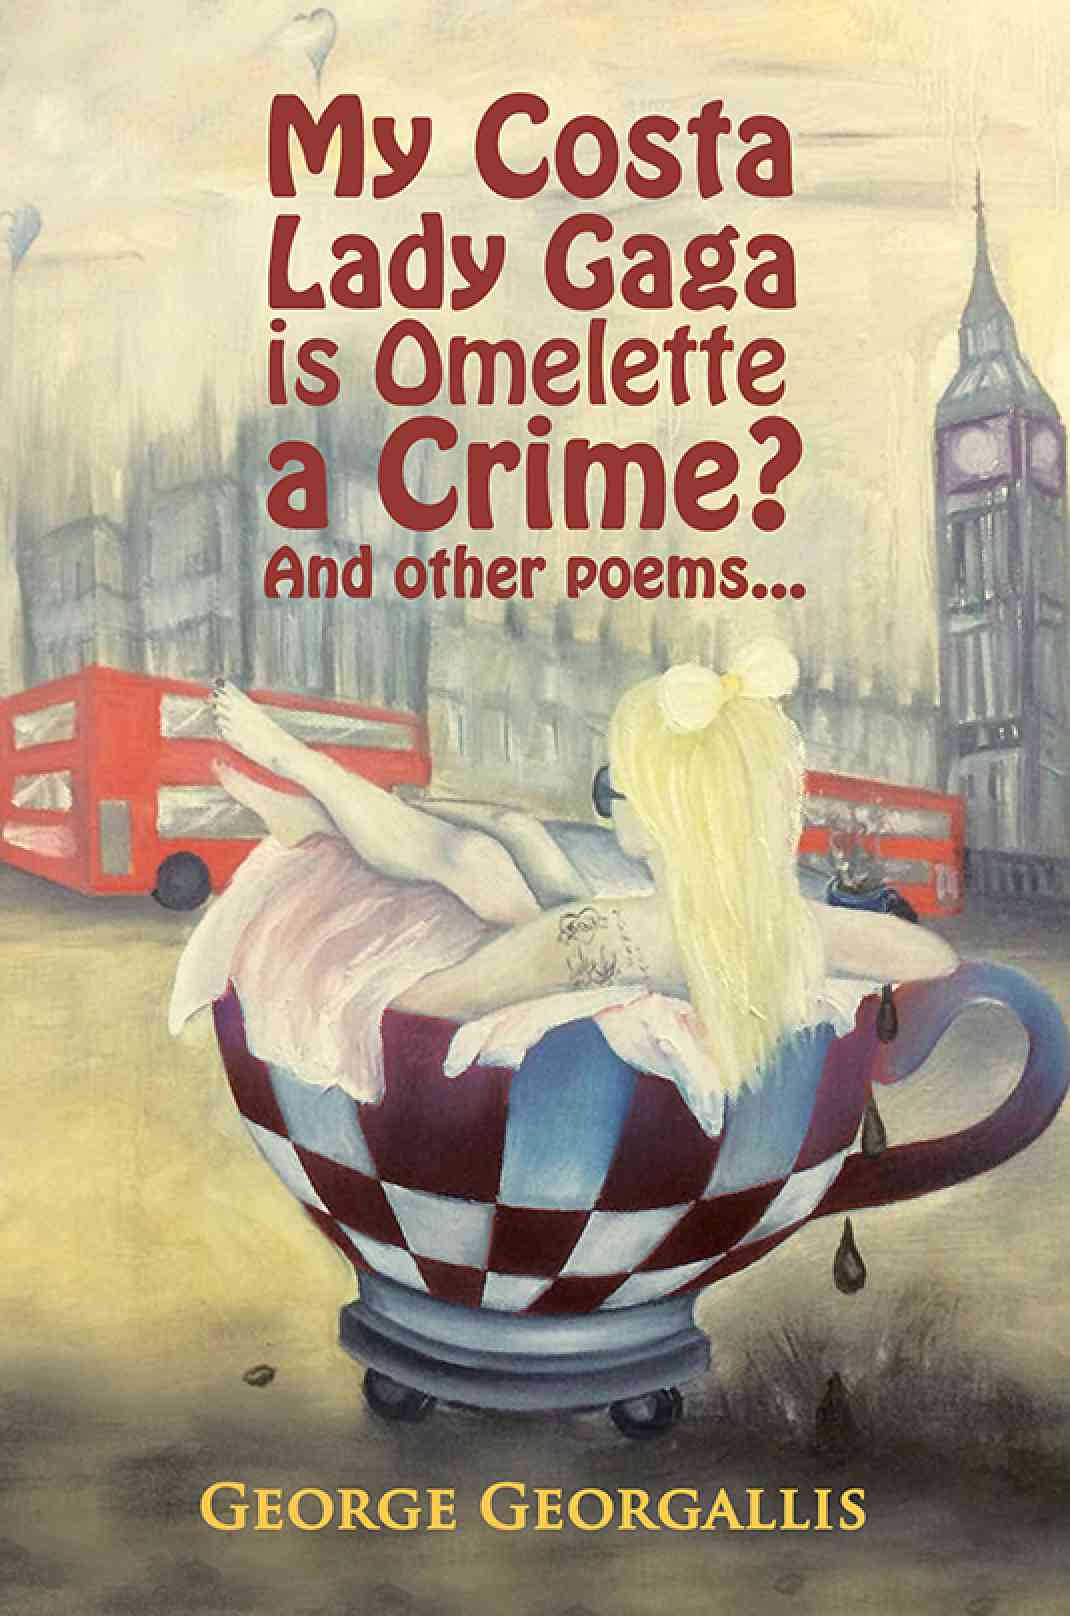 My Costa Lady Gaga is Omelette a Crime?